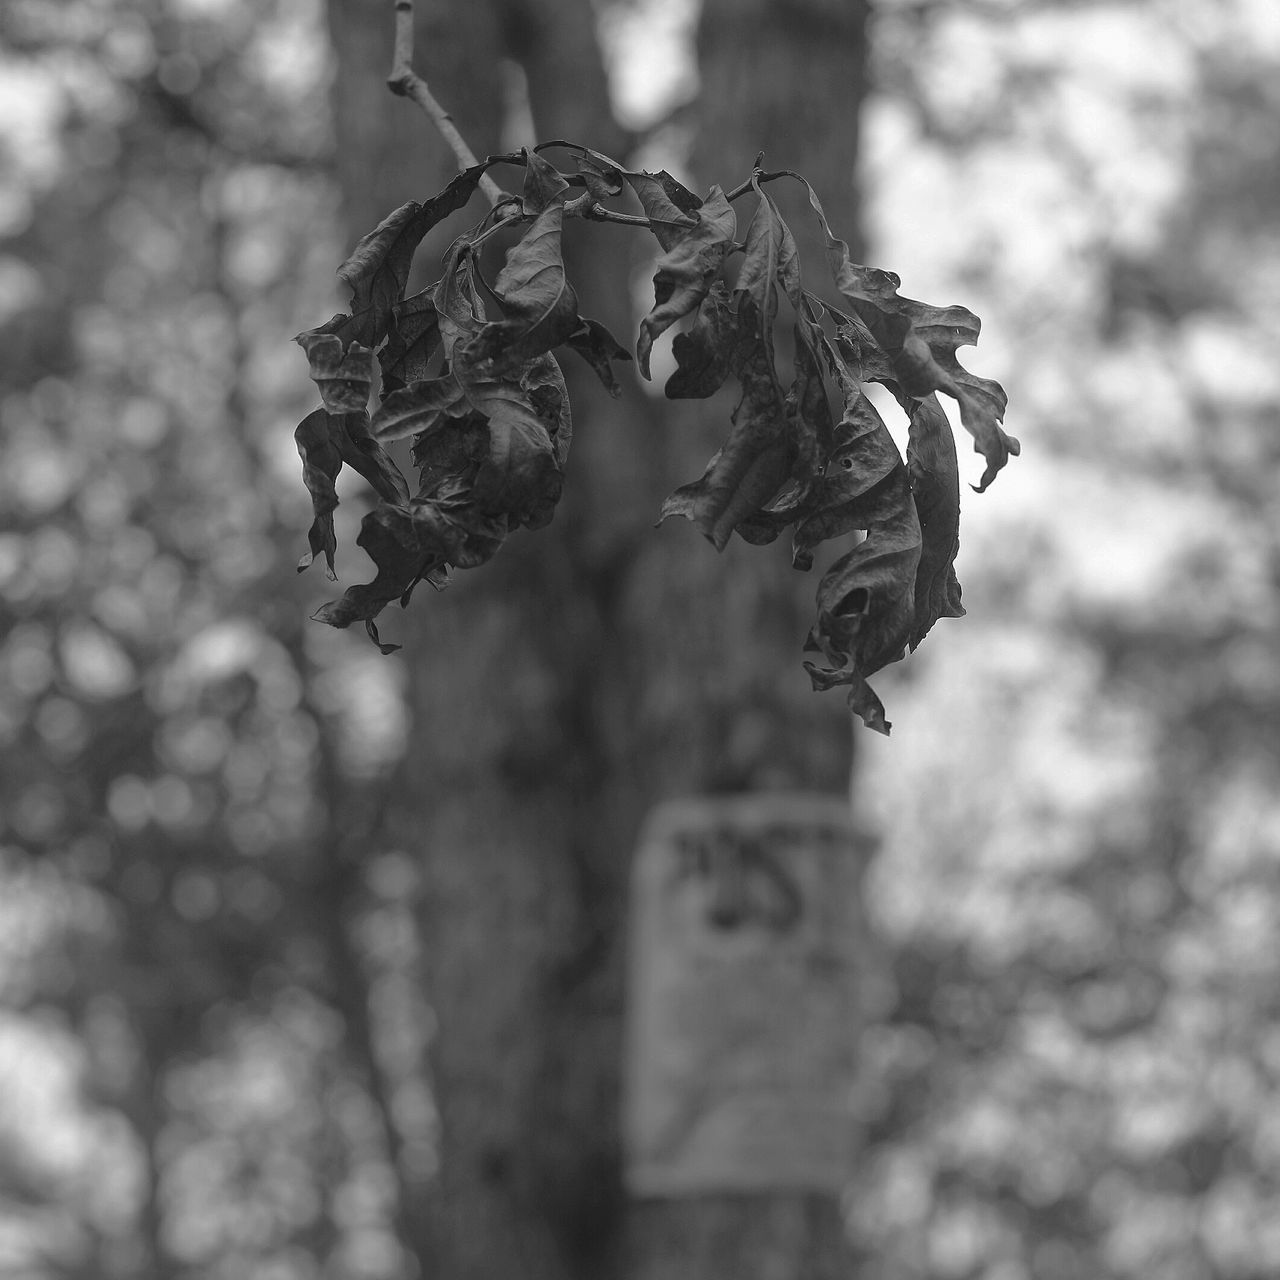 Plant Close-up Nature Accidents And Disasters Outdoors No People Day Beauty In Nature Dof_brilliance Depth Of Focus Depth Of Field Dof Nature No Trespassing Dof Tranquility Tranquil Scene Backgrounds Blackandwhite Black And White Focus On Foreground Nature Tree Full Frame Wilted Plant